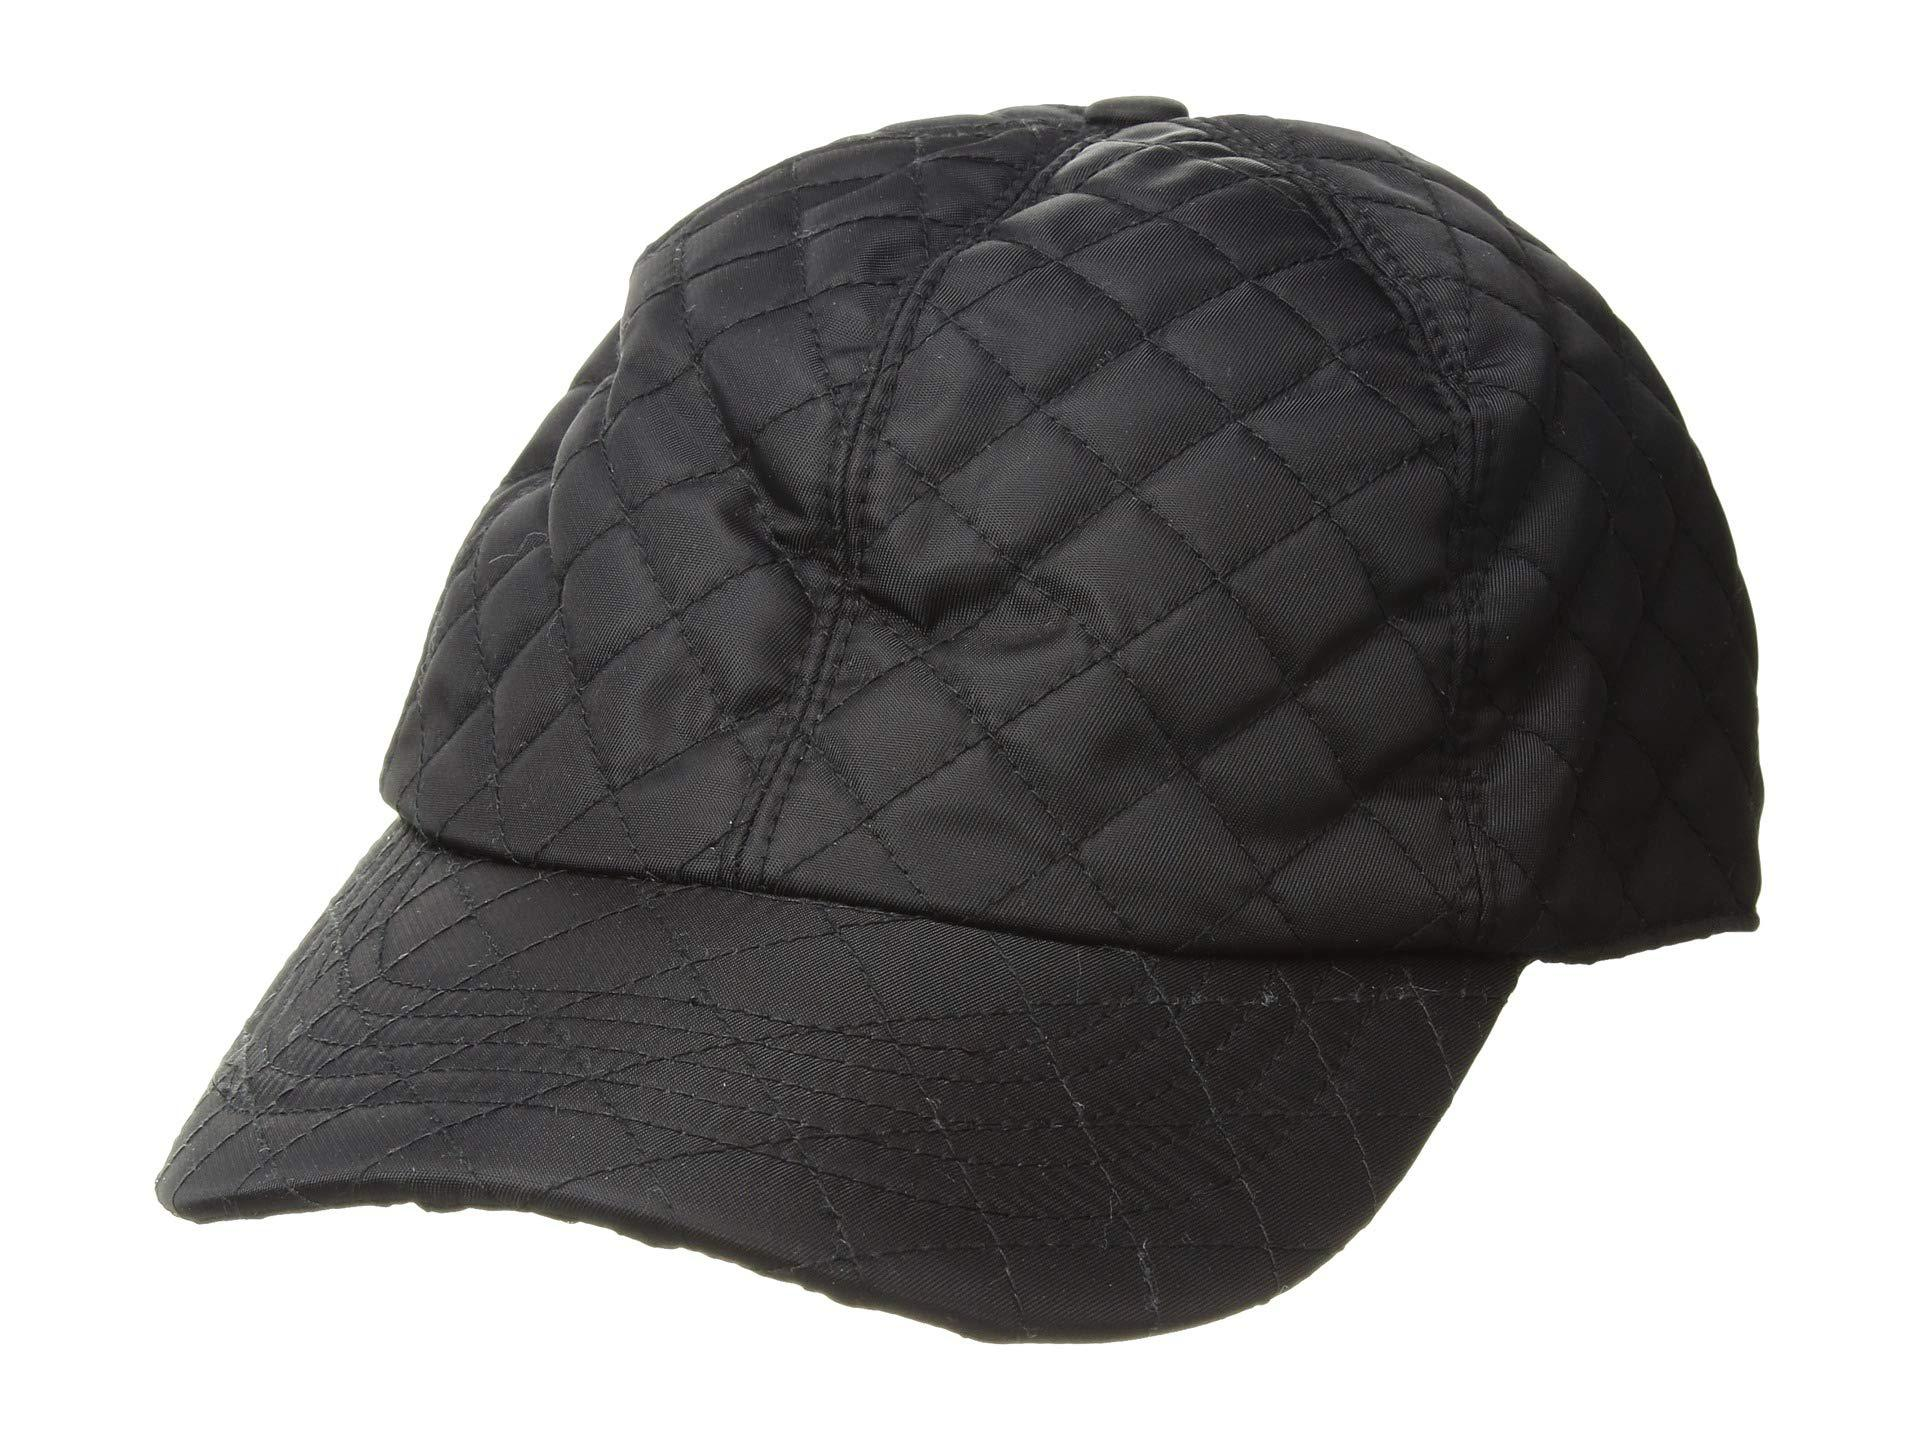 d902cac789e Lyst - Betmar Quilted Rain Cap (black) Caps in Black